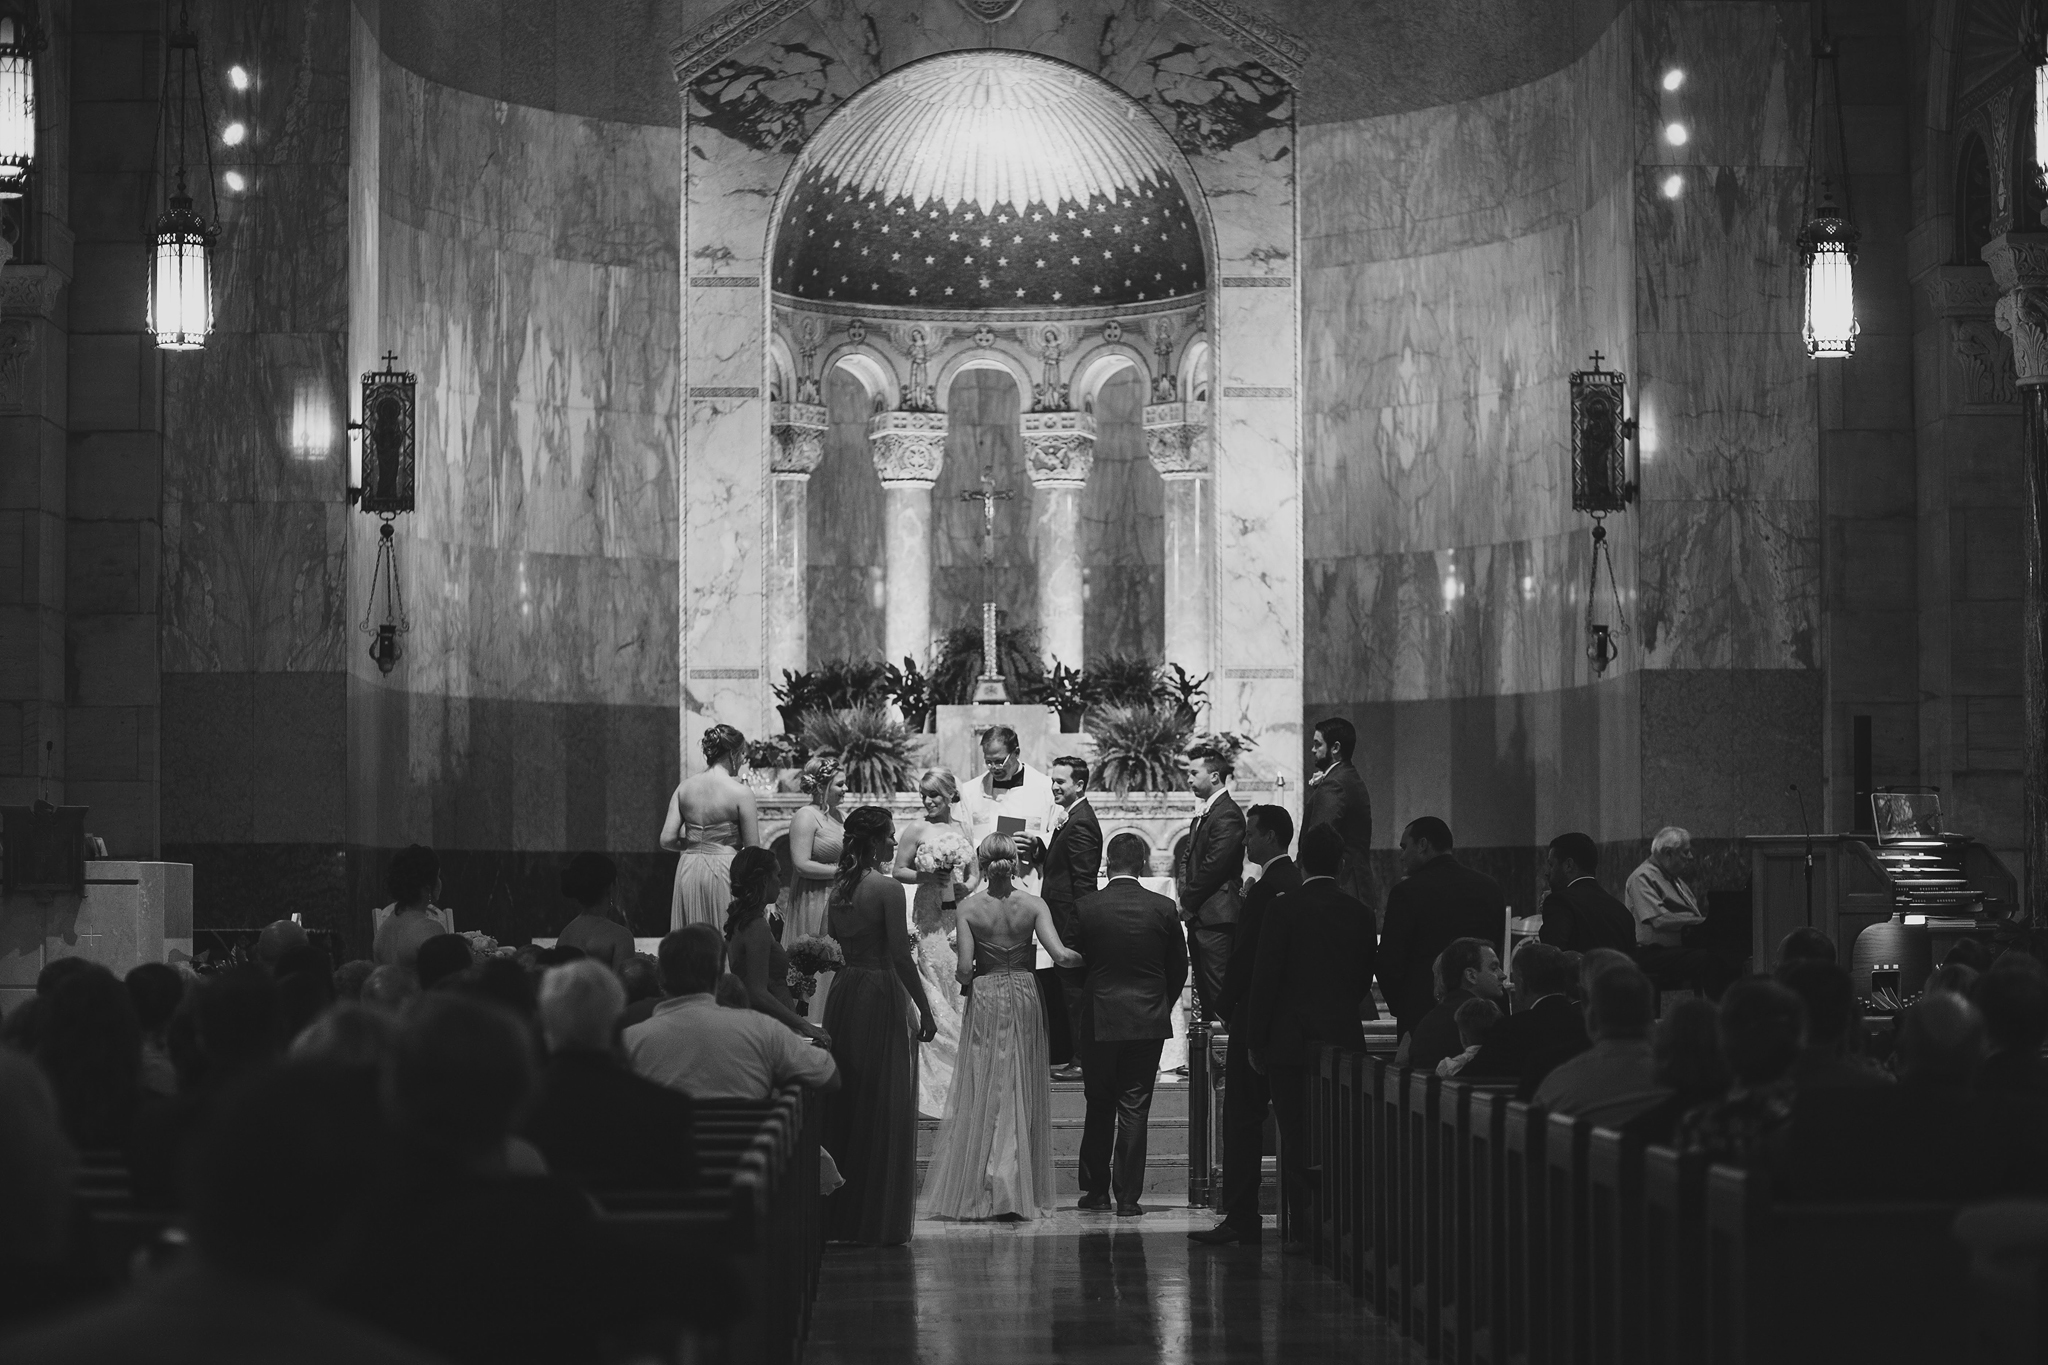 Cincinnati-Dayton-OH-Based-Traveling-Wedding-Photographer-The-Monastery-85.jpg